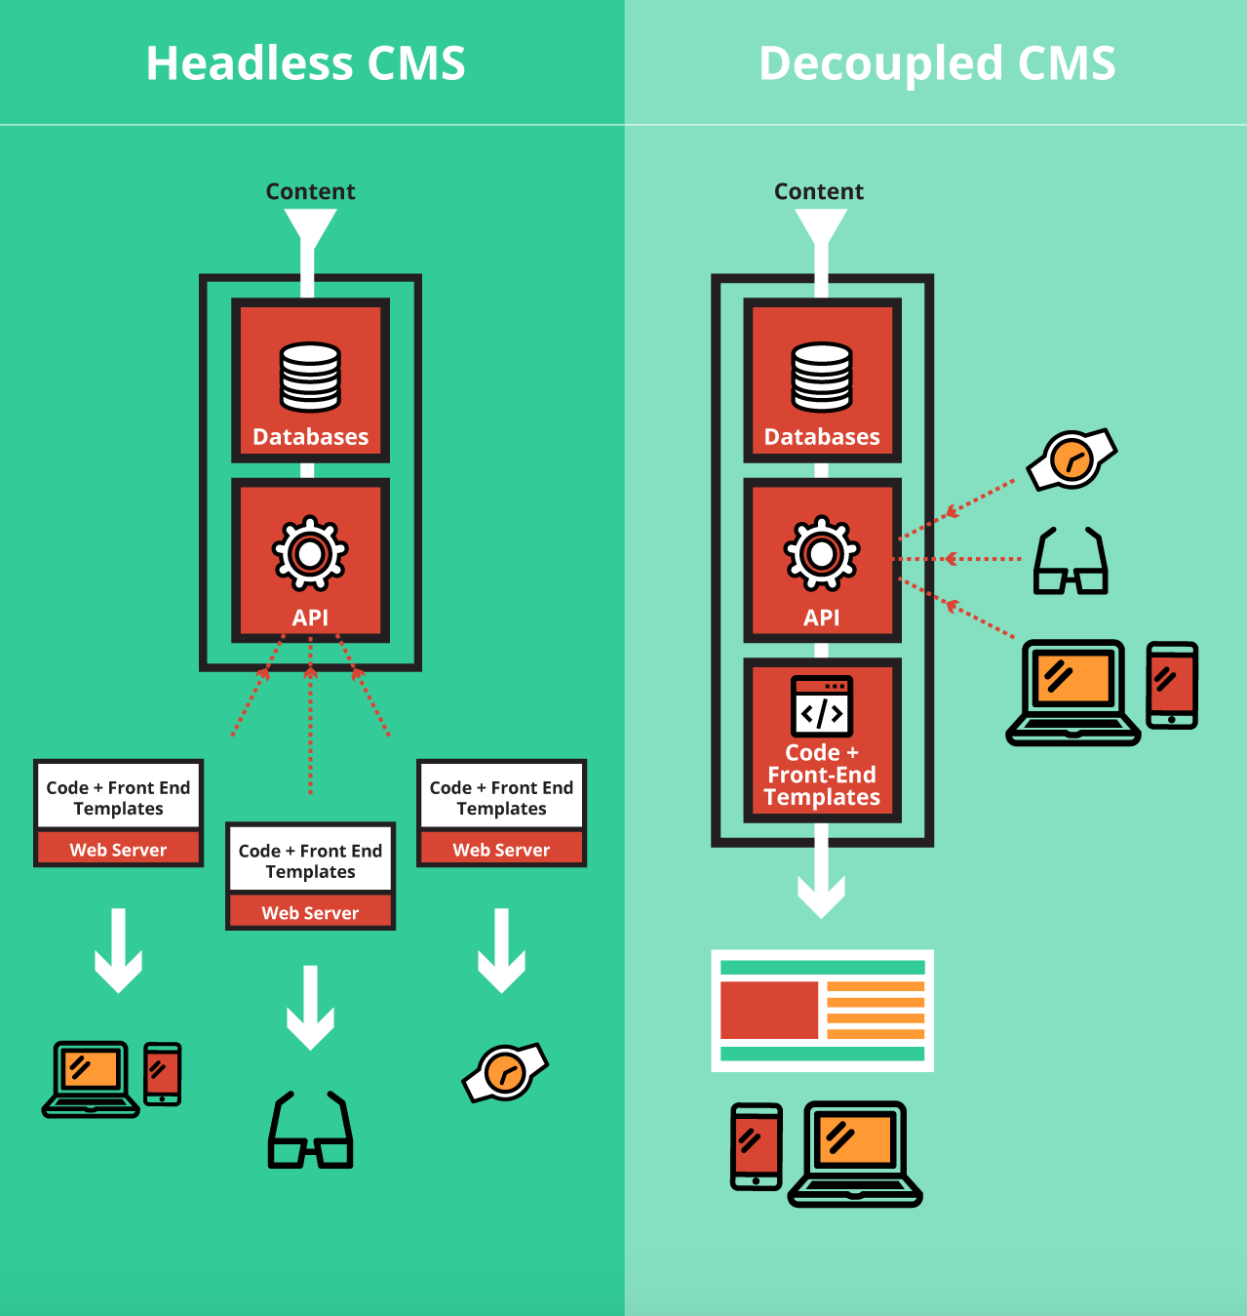 Headless CMS vs. Decoupled CMS